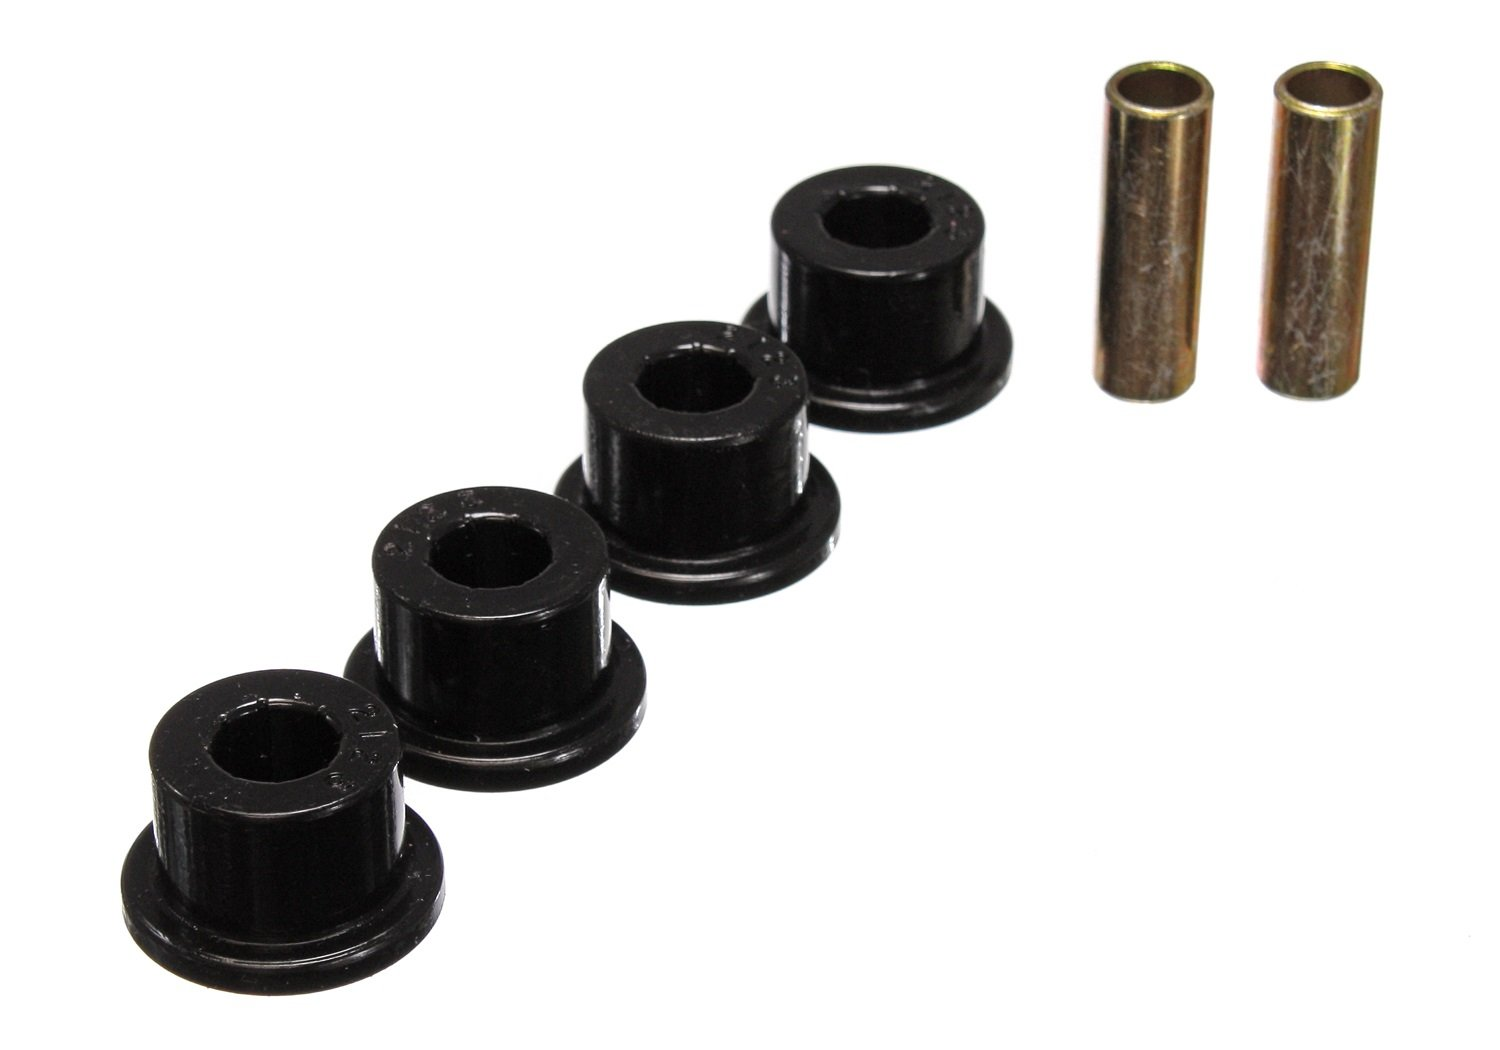 Energy Suspension 9.9489G UNIVERSAL LINK - FLANGE TYPE BUSHING by Energy Suspension